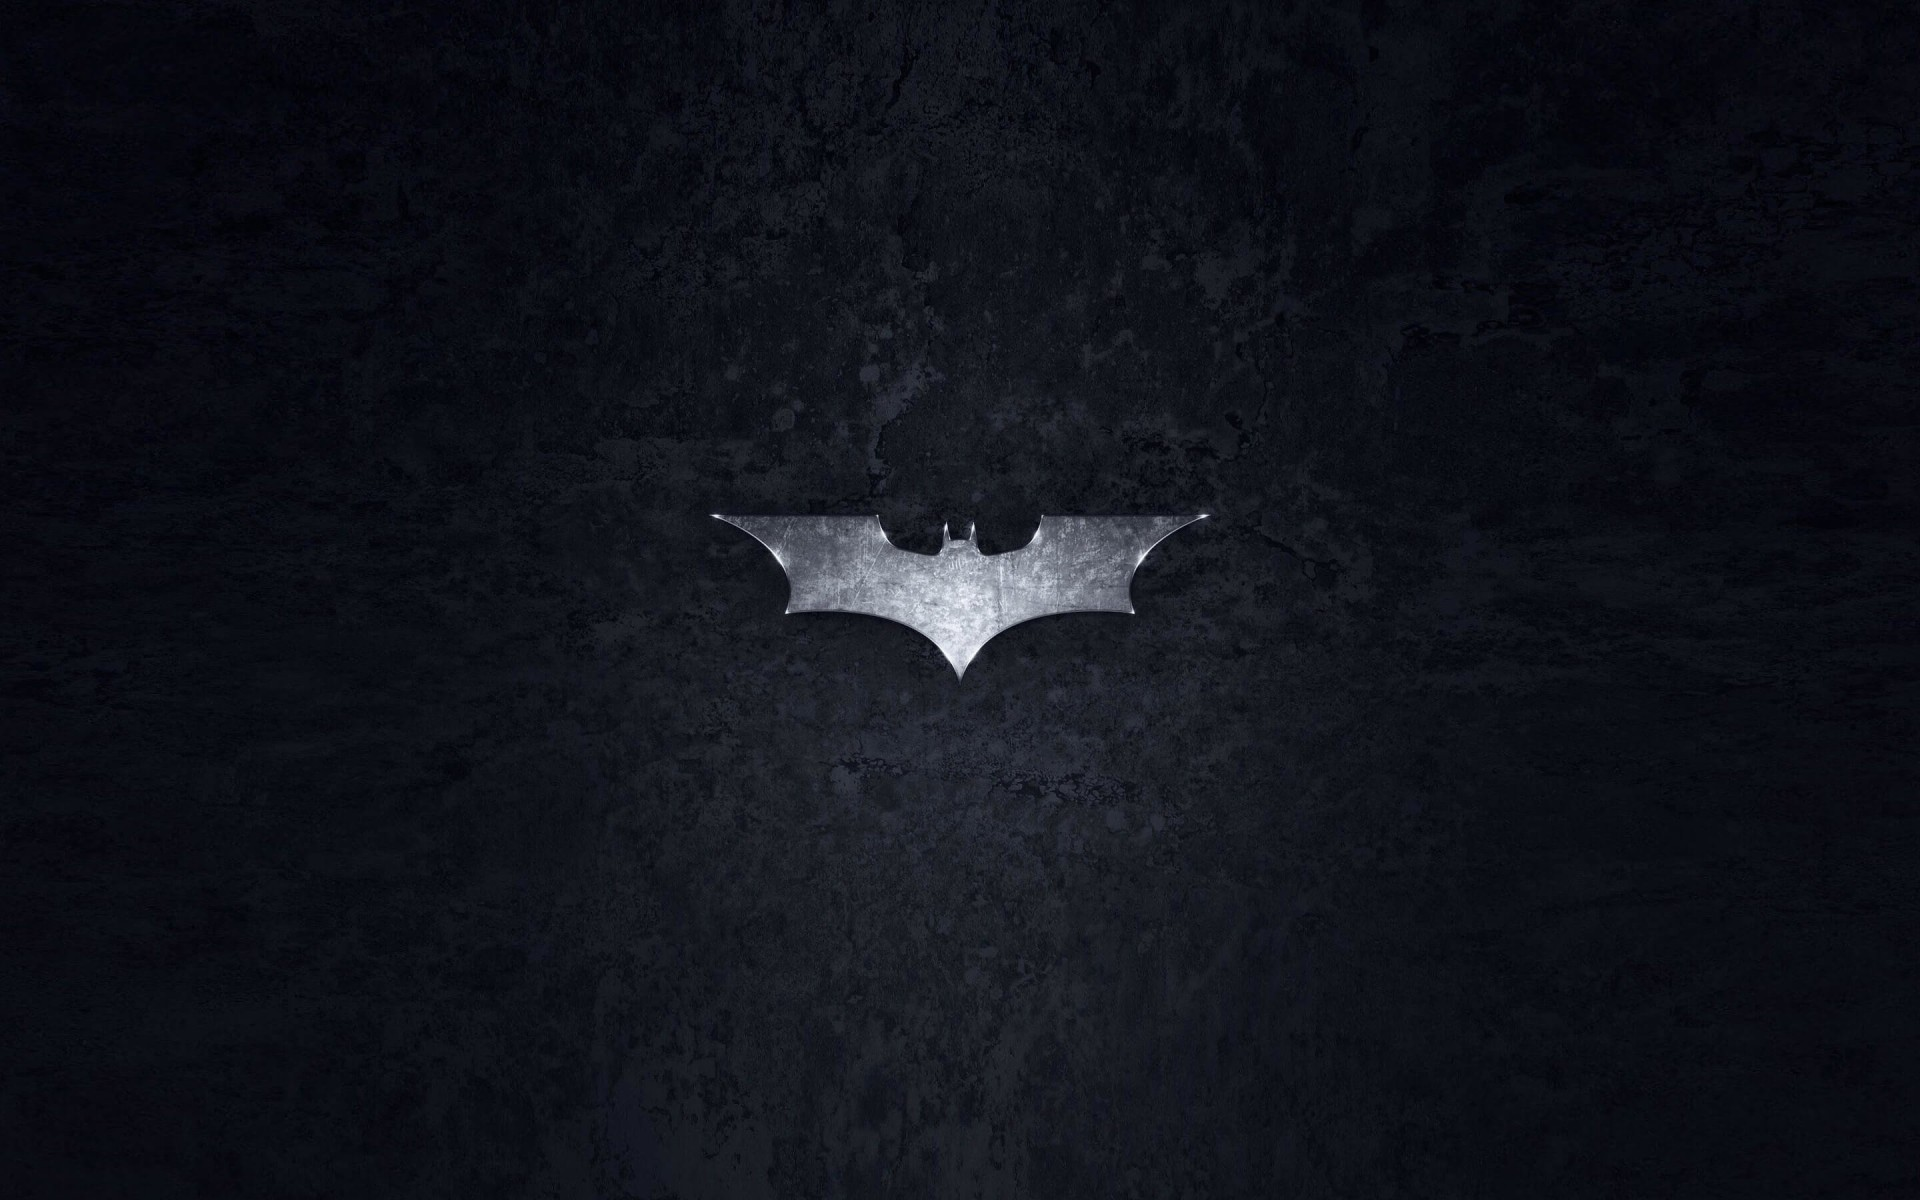 Grungy Batman Dark Knight Logo Wallpaper for Desktop 1920x1200